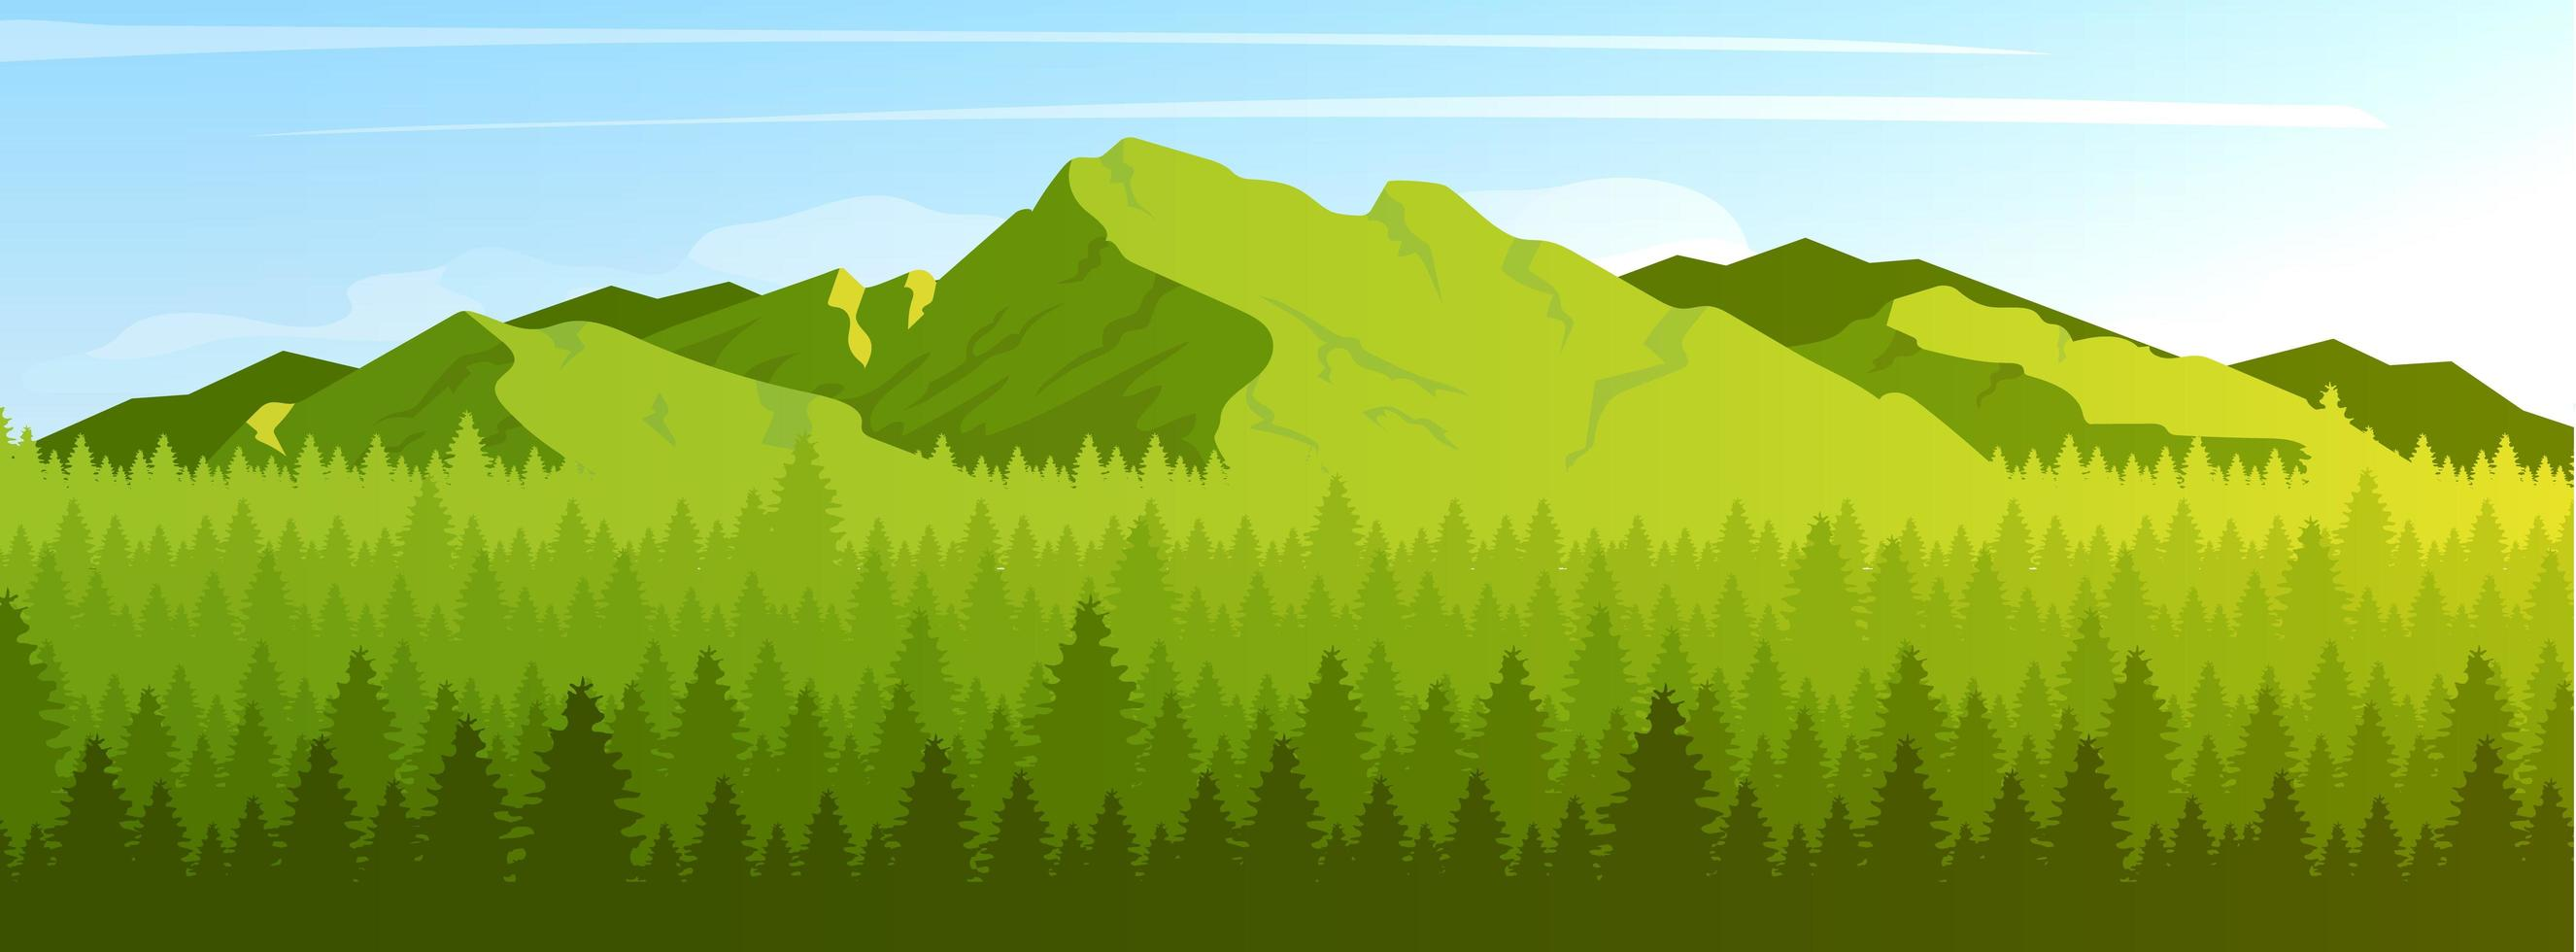 Mountain and coniferous forest vector